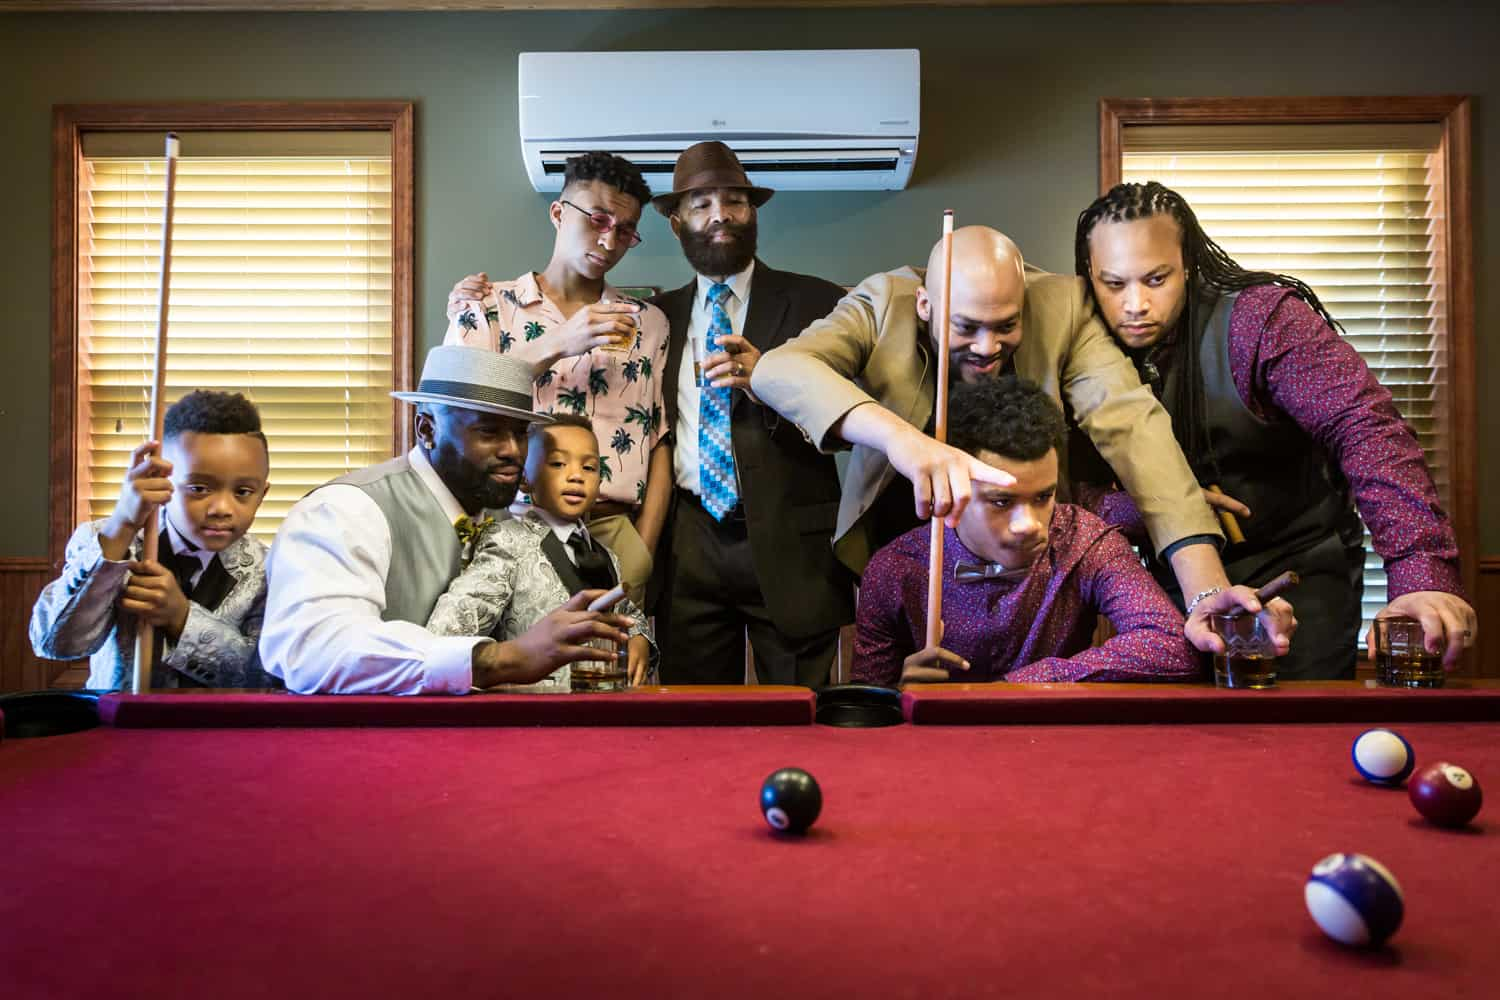 Male family members helping little boys play pool during a family reunion portrait